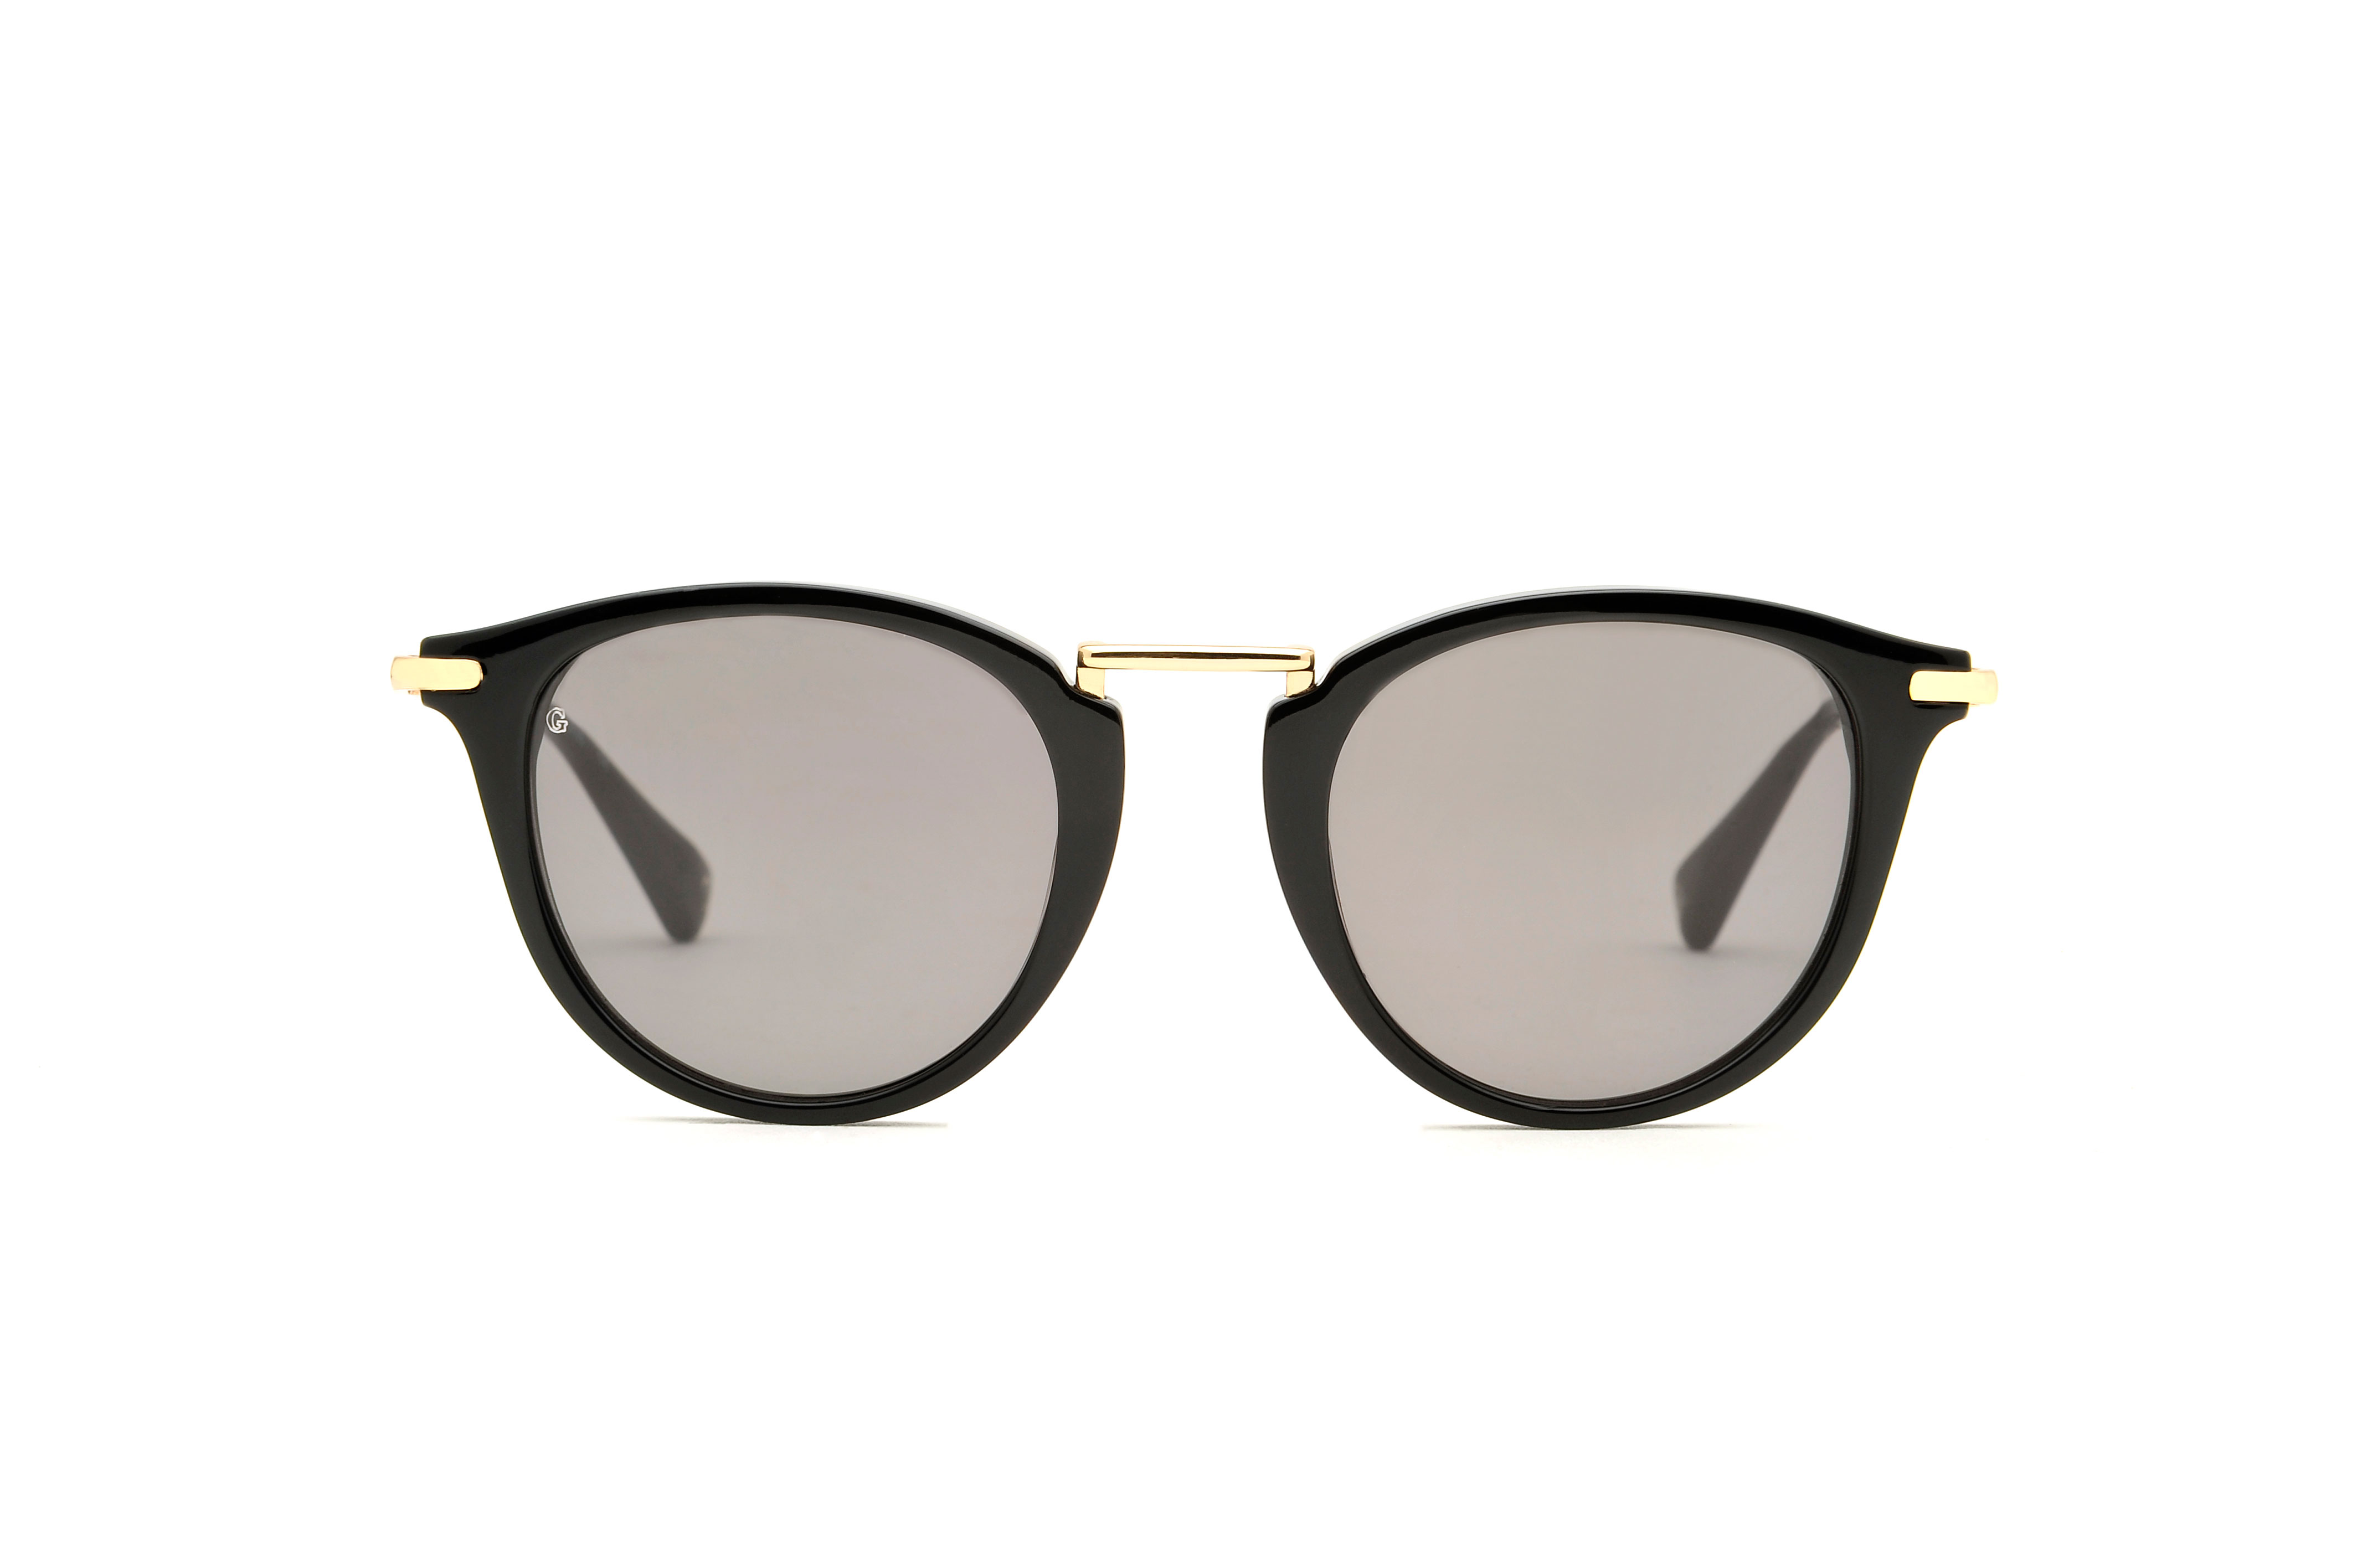 Lucky acetate/metal rounded black sunglasses by GIGI Studios